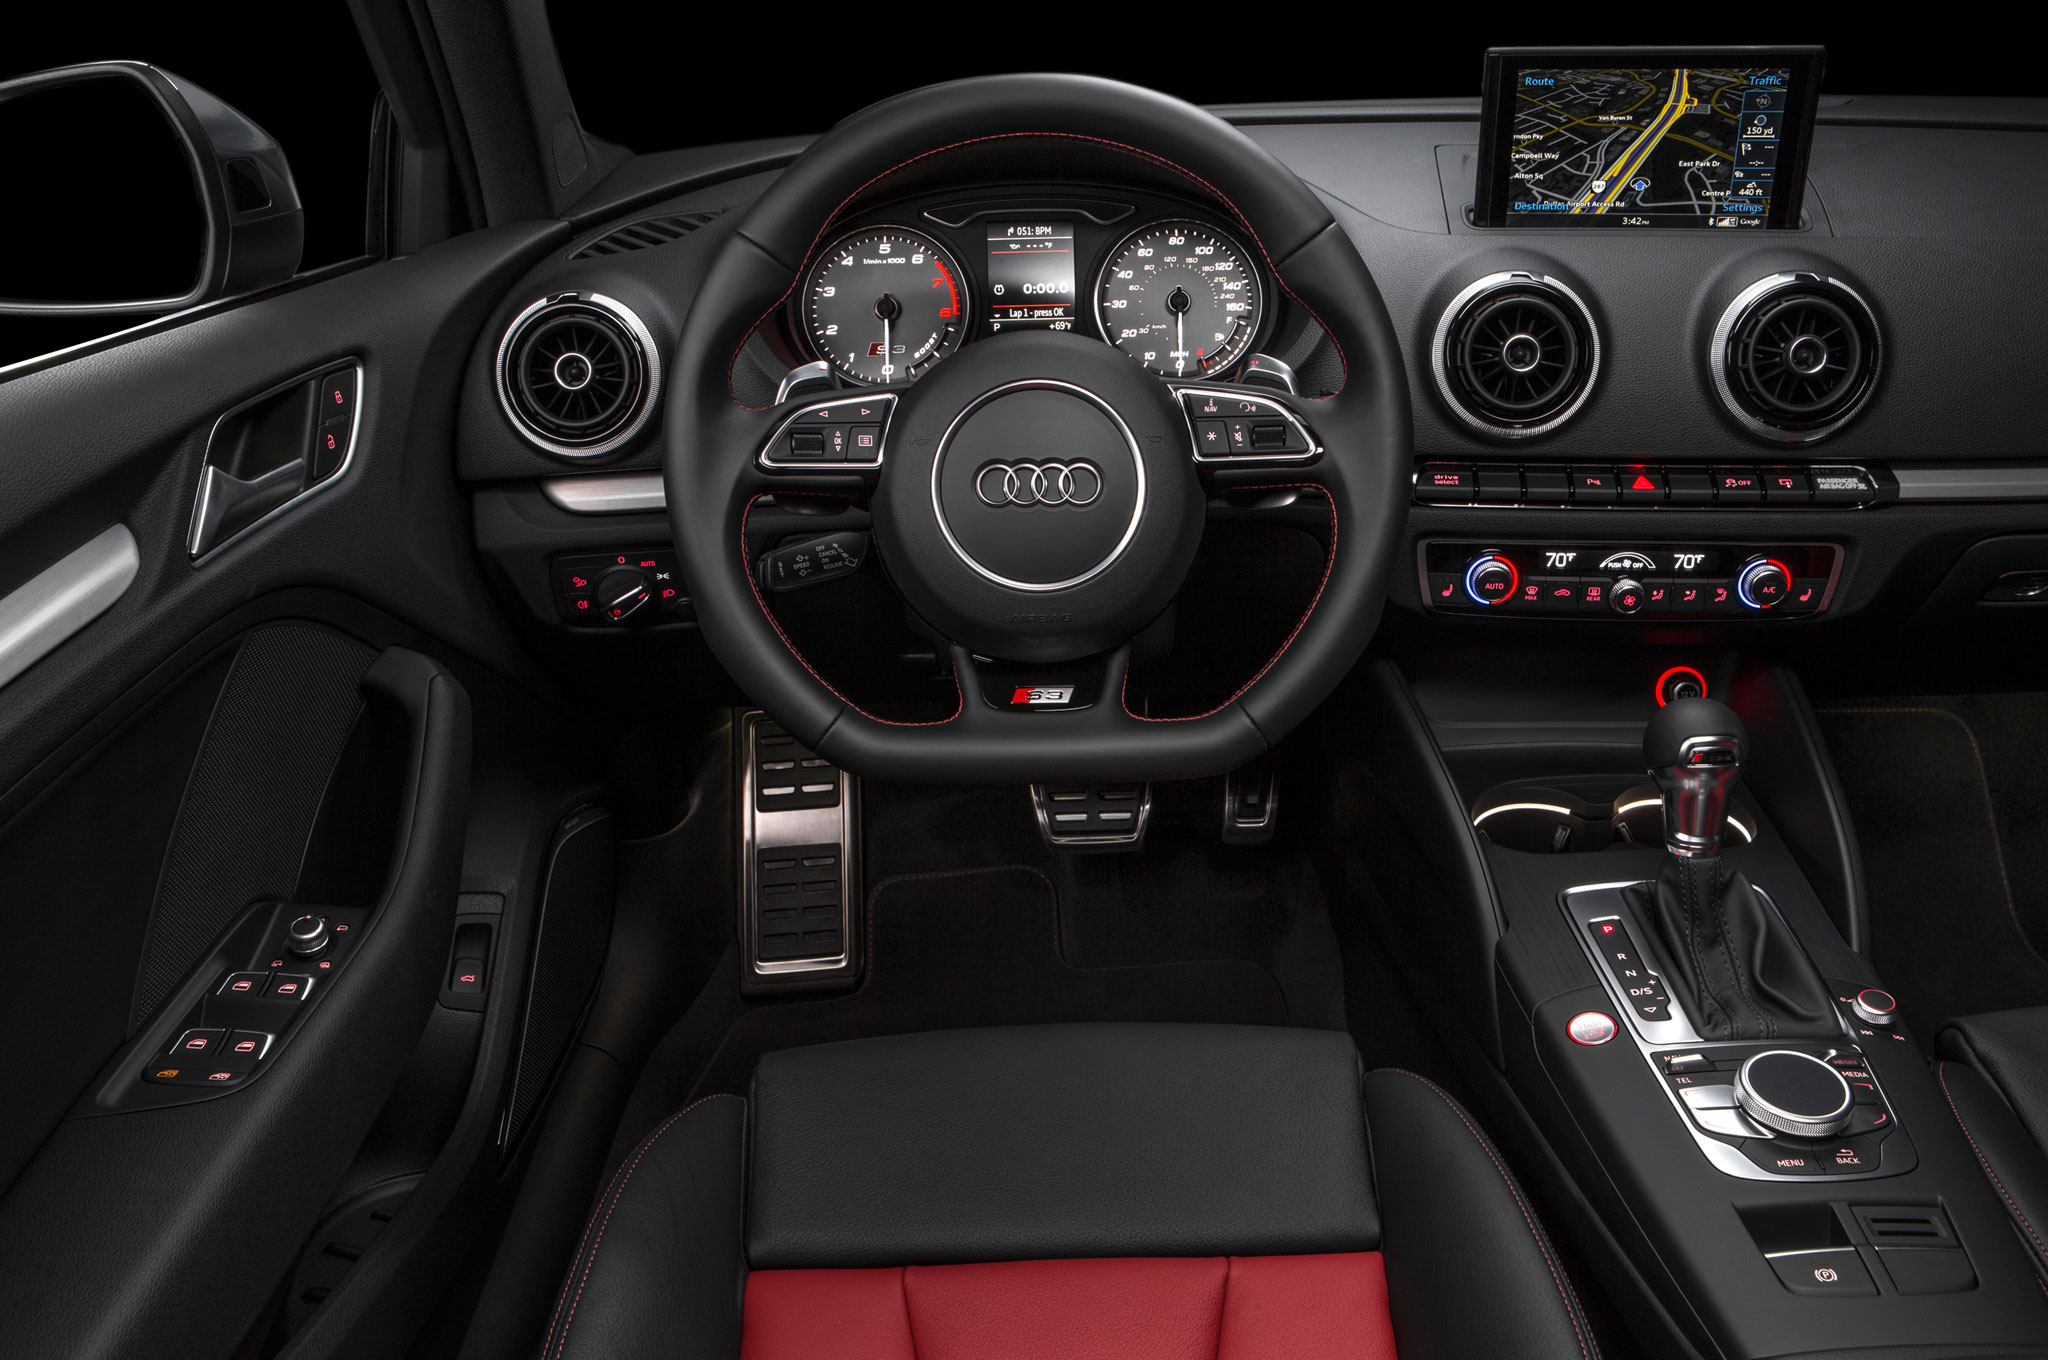 2015 Audi S3 Sedan Limited Edition Cockpit Interior (View 1 of 10)